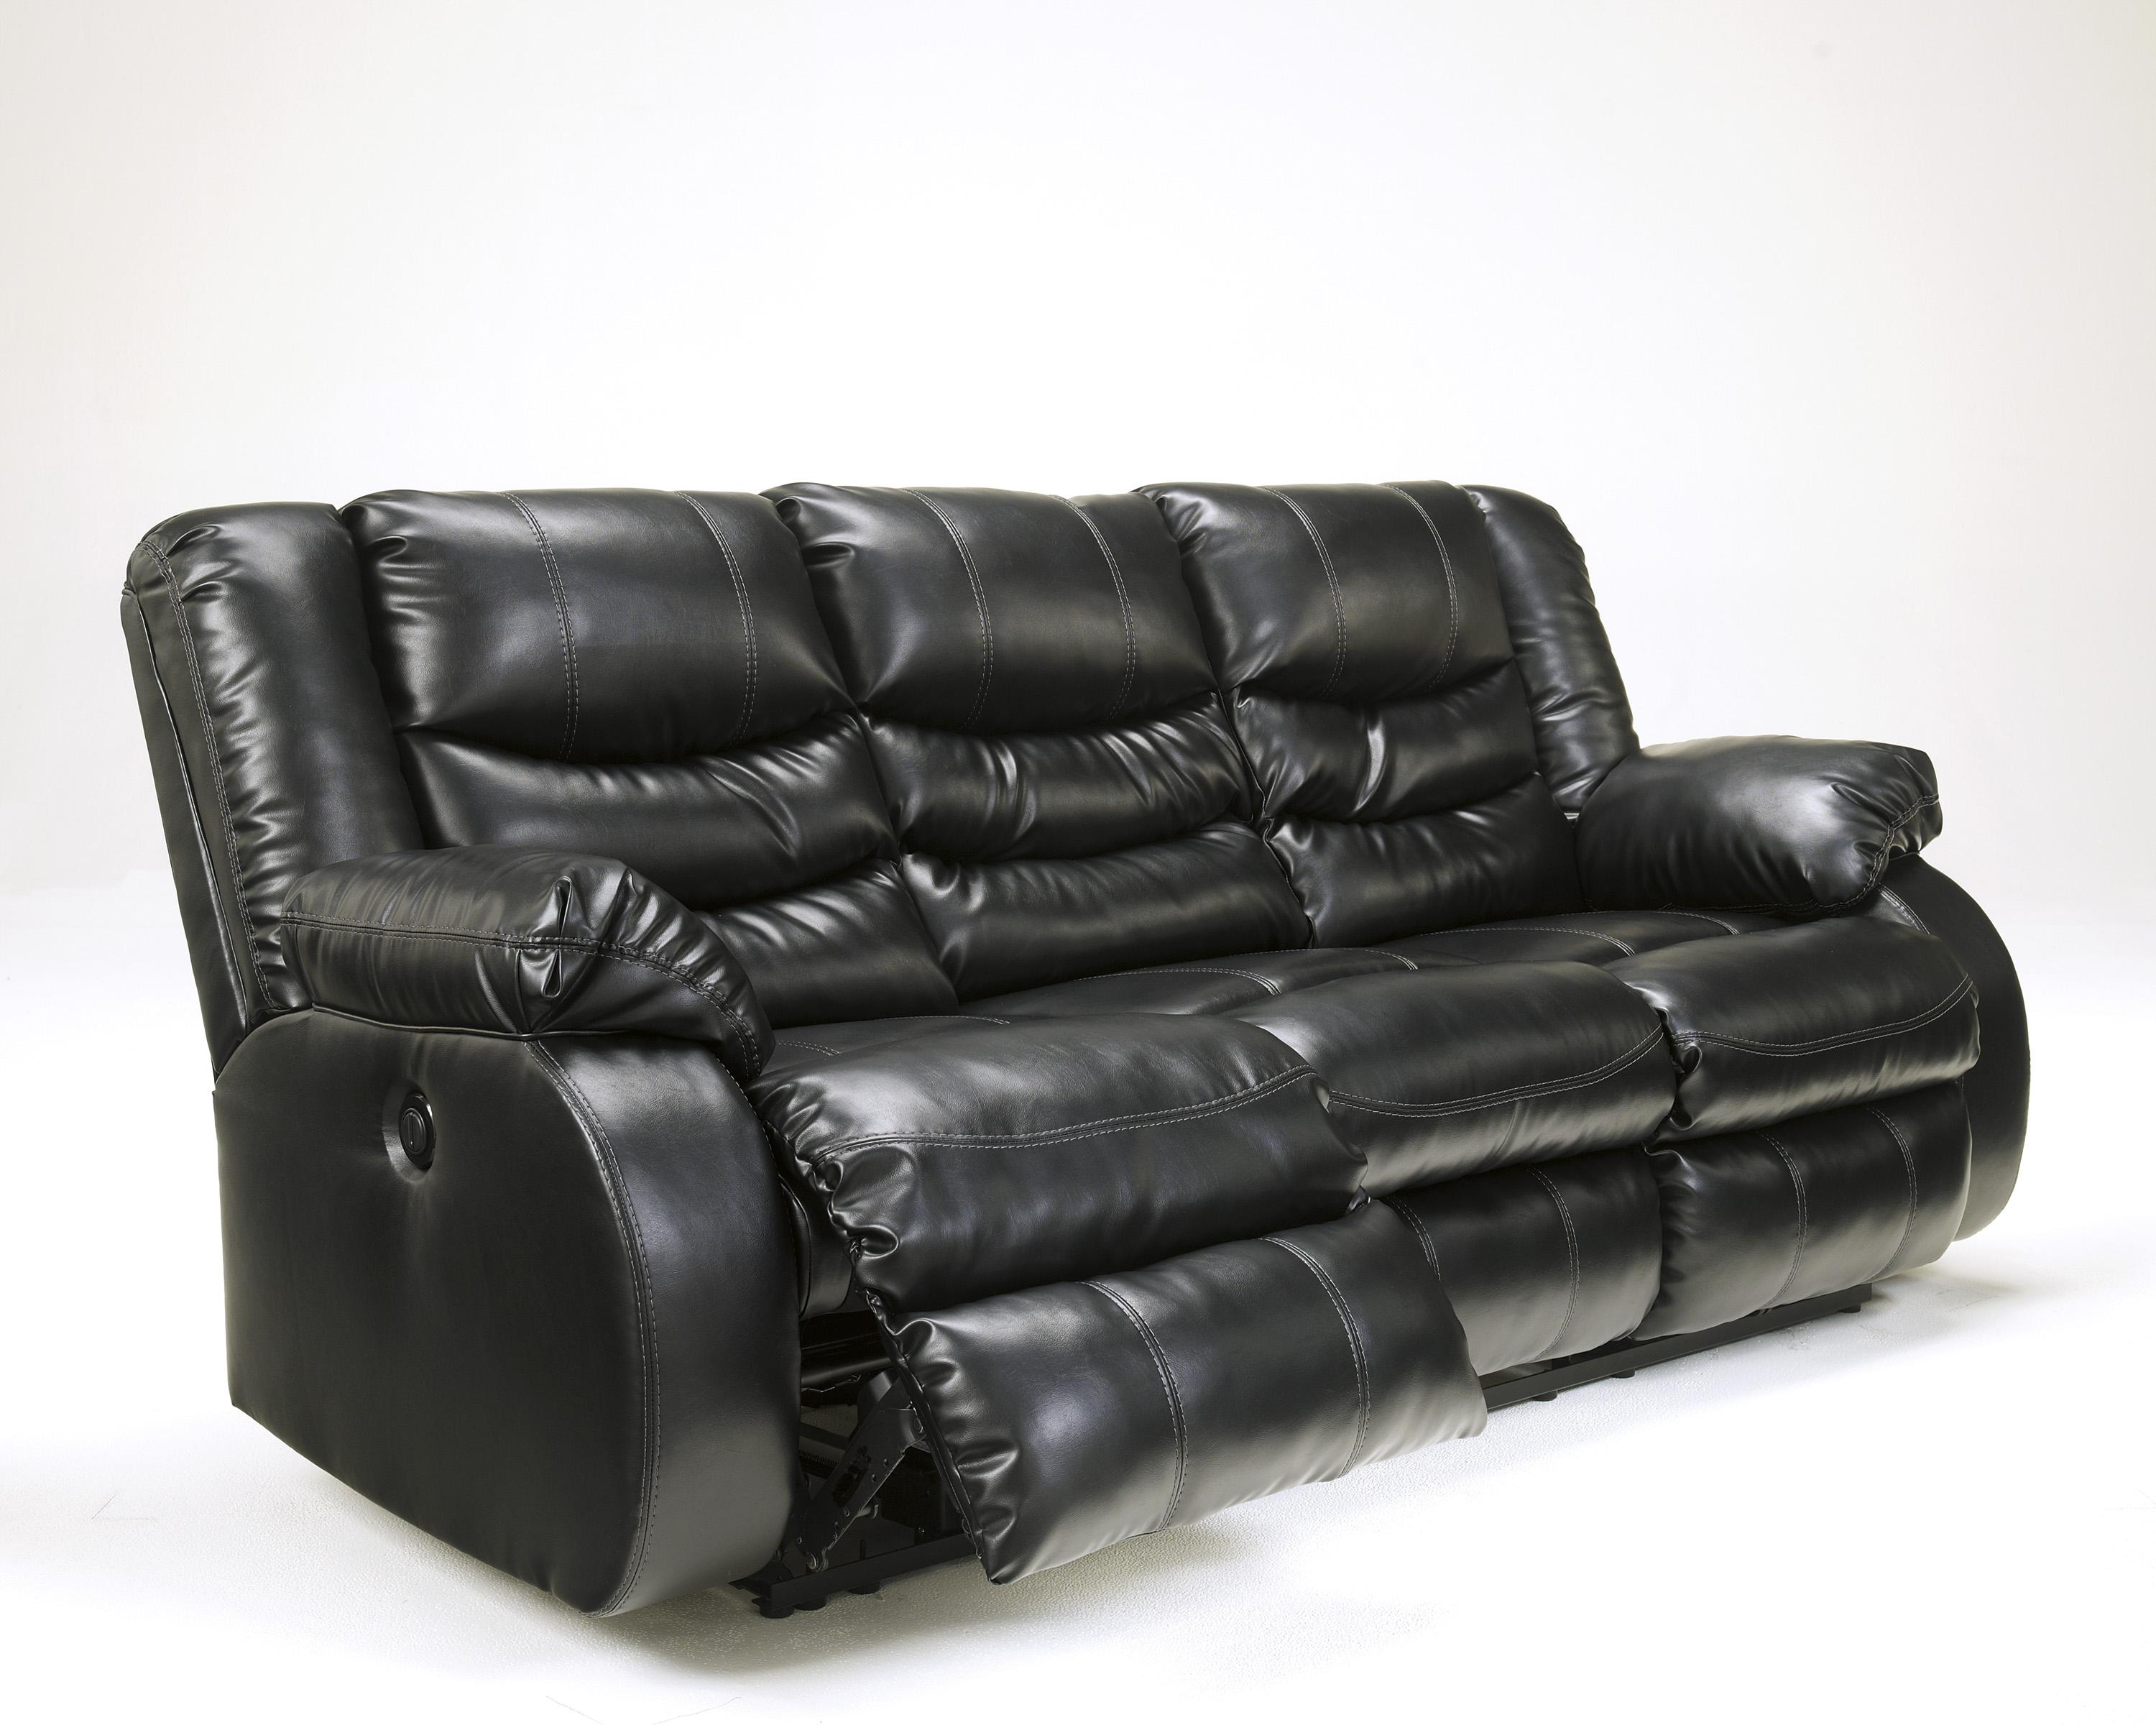 faux leather reclining sofa set beds for bad backs contemporary with pillow arms